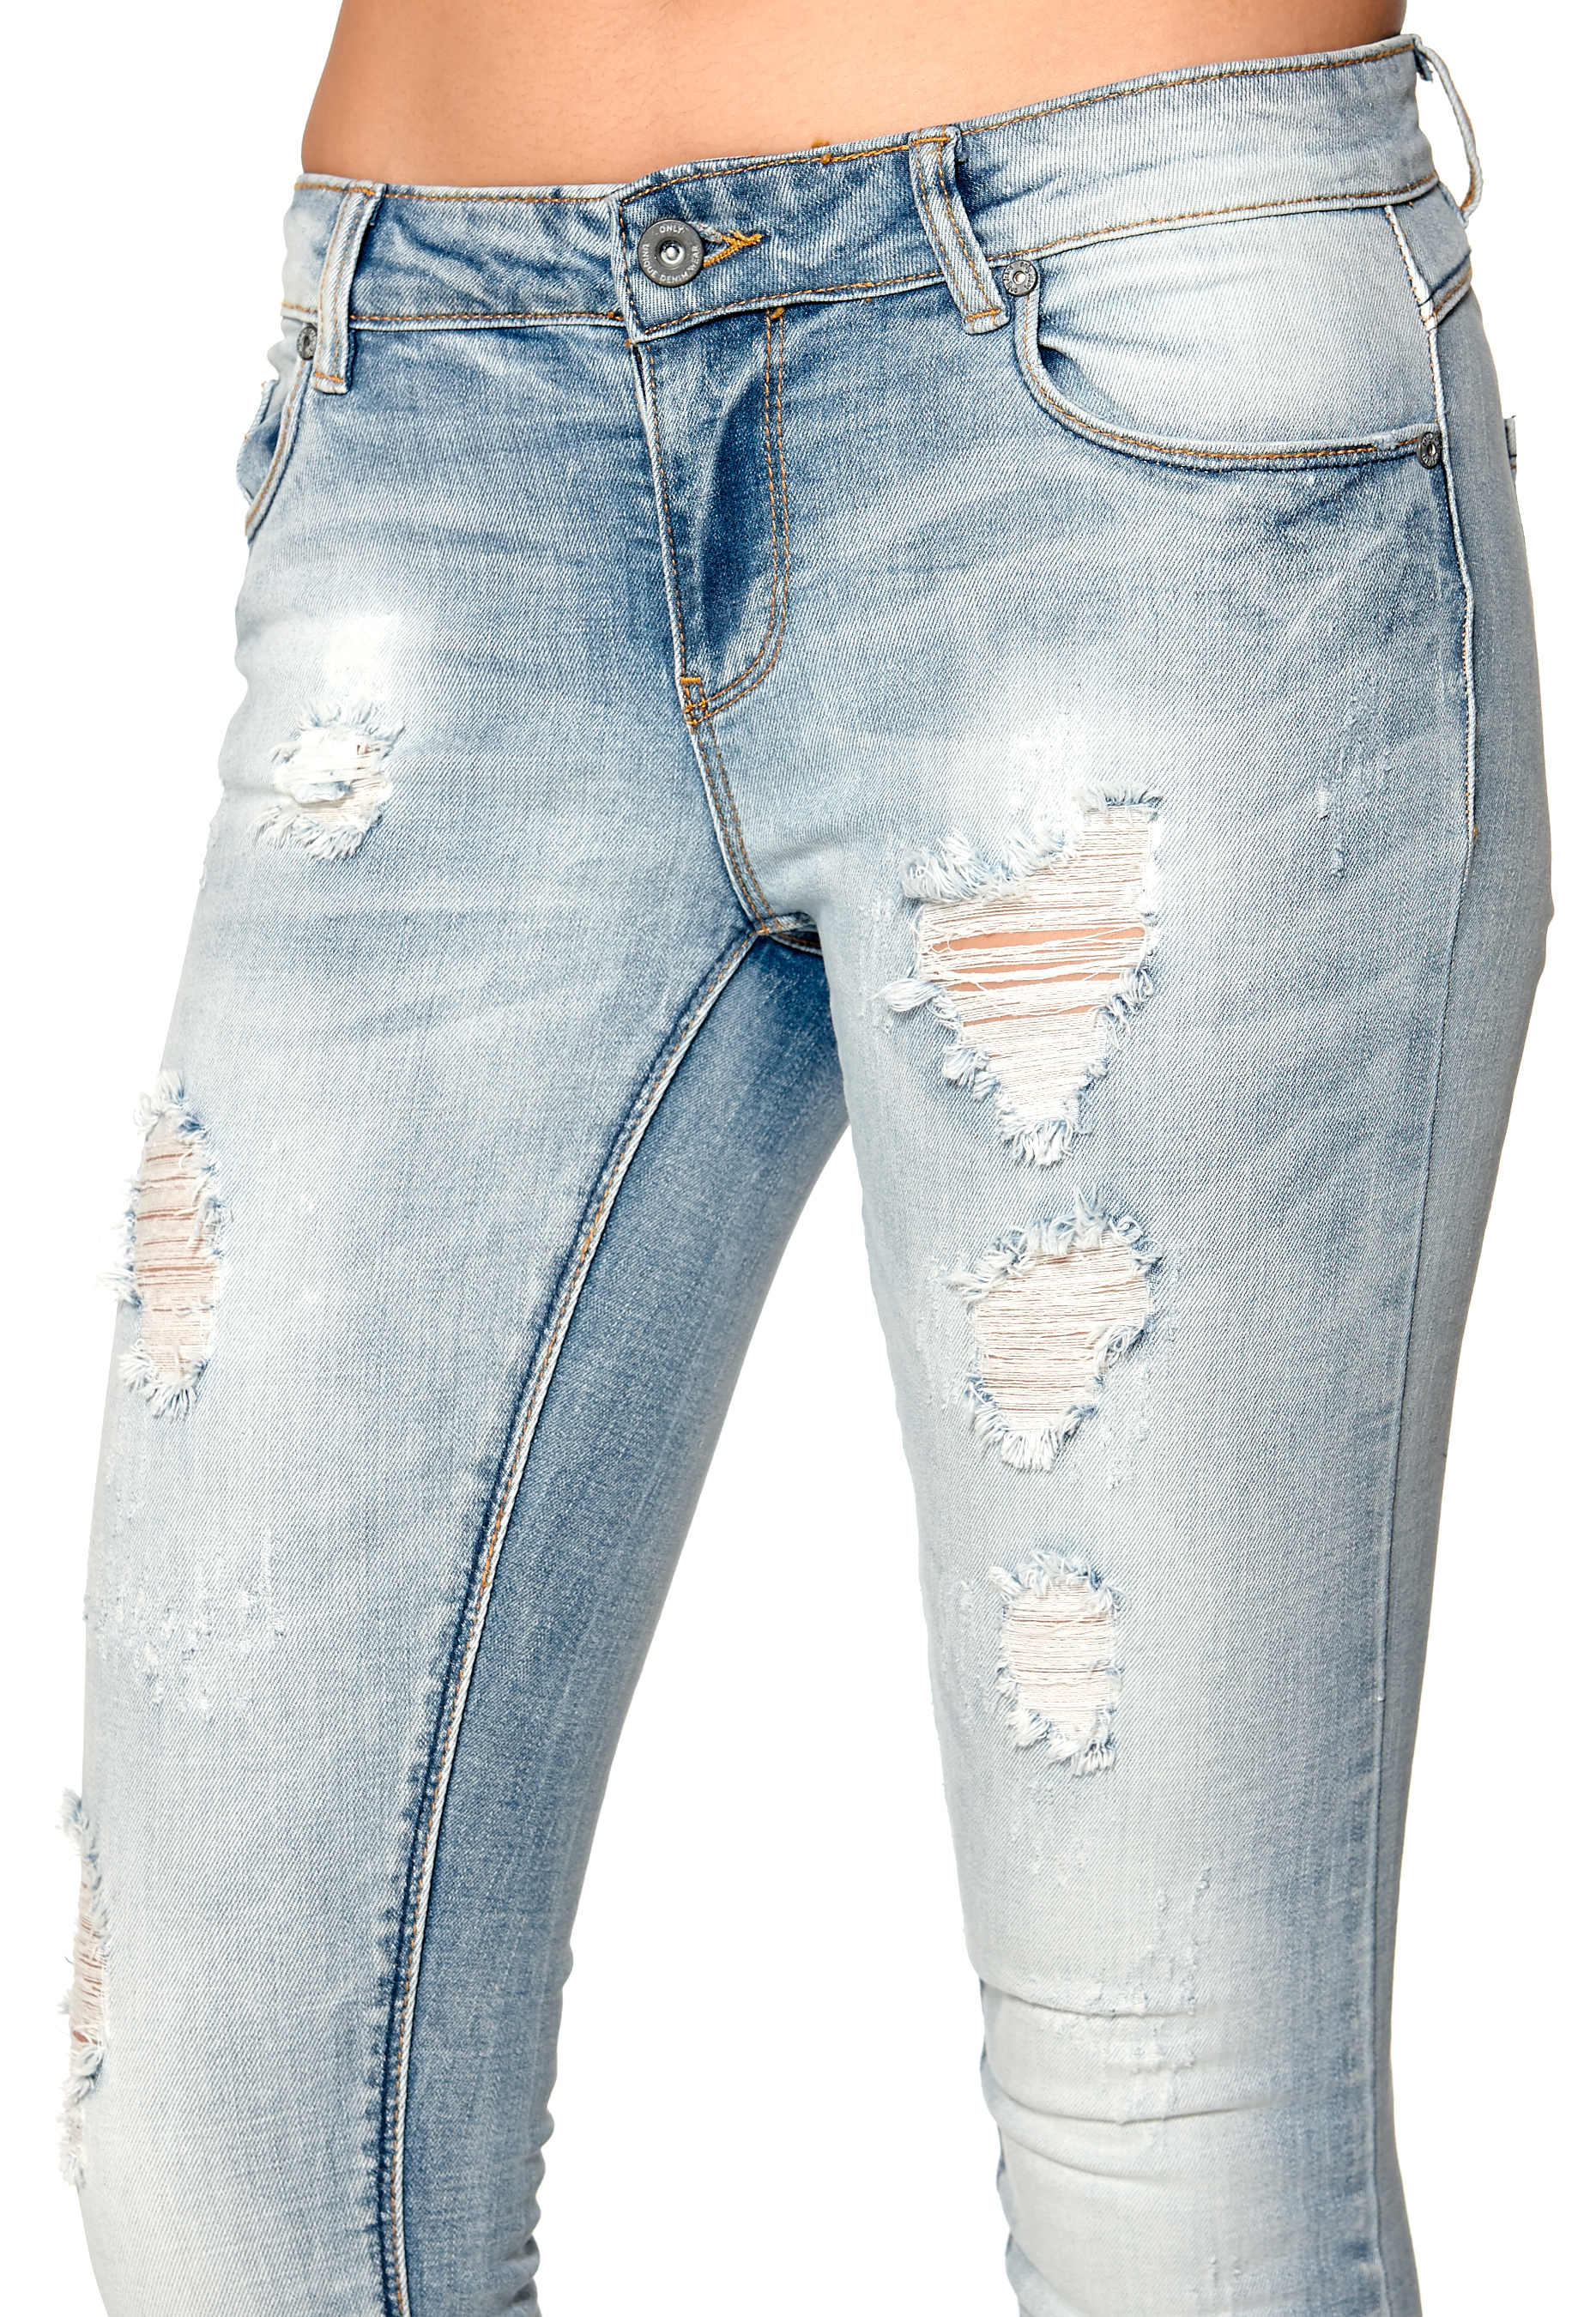 Shop womens denim jeans cheap sale online, you can buy skinny jeans, black denim jeans, blue denim jeans and raw denim jeans for women at wholesale prices on senonsdownload-gv.cf FREE shipping available worldwide.